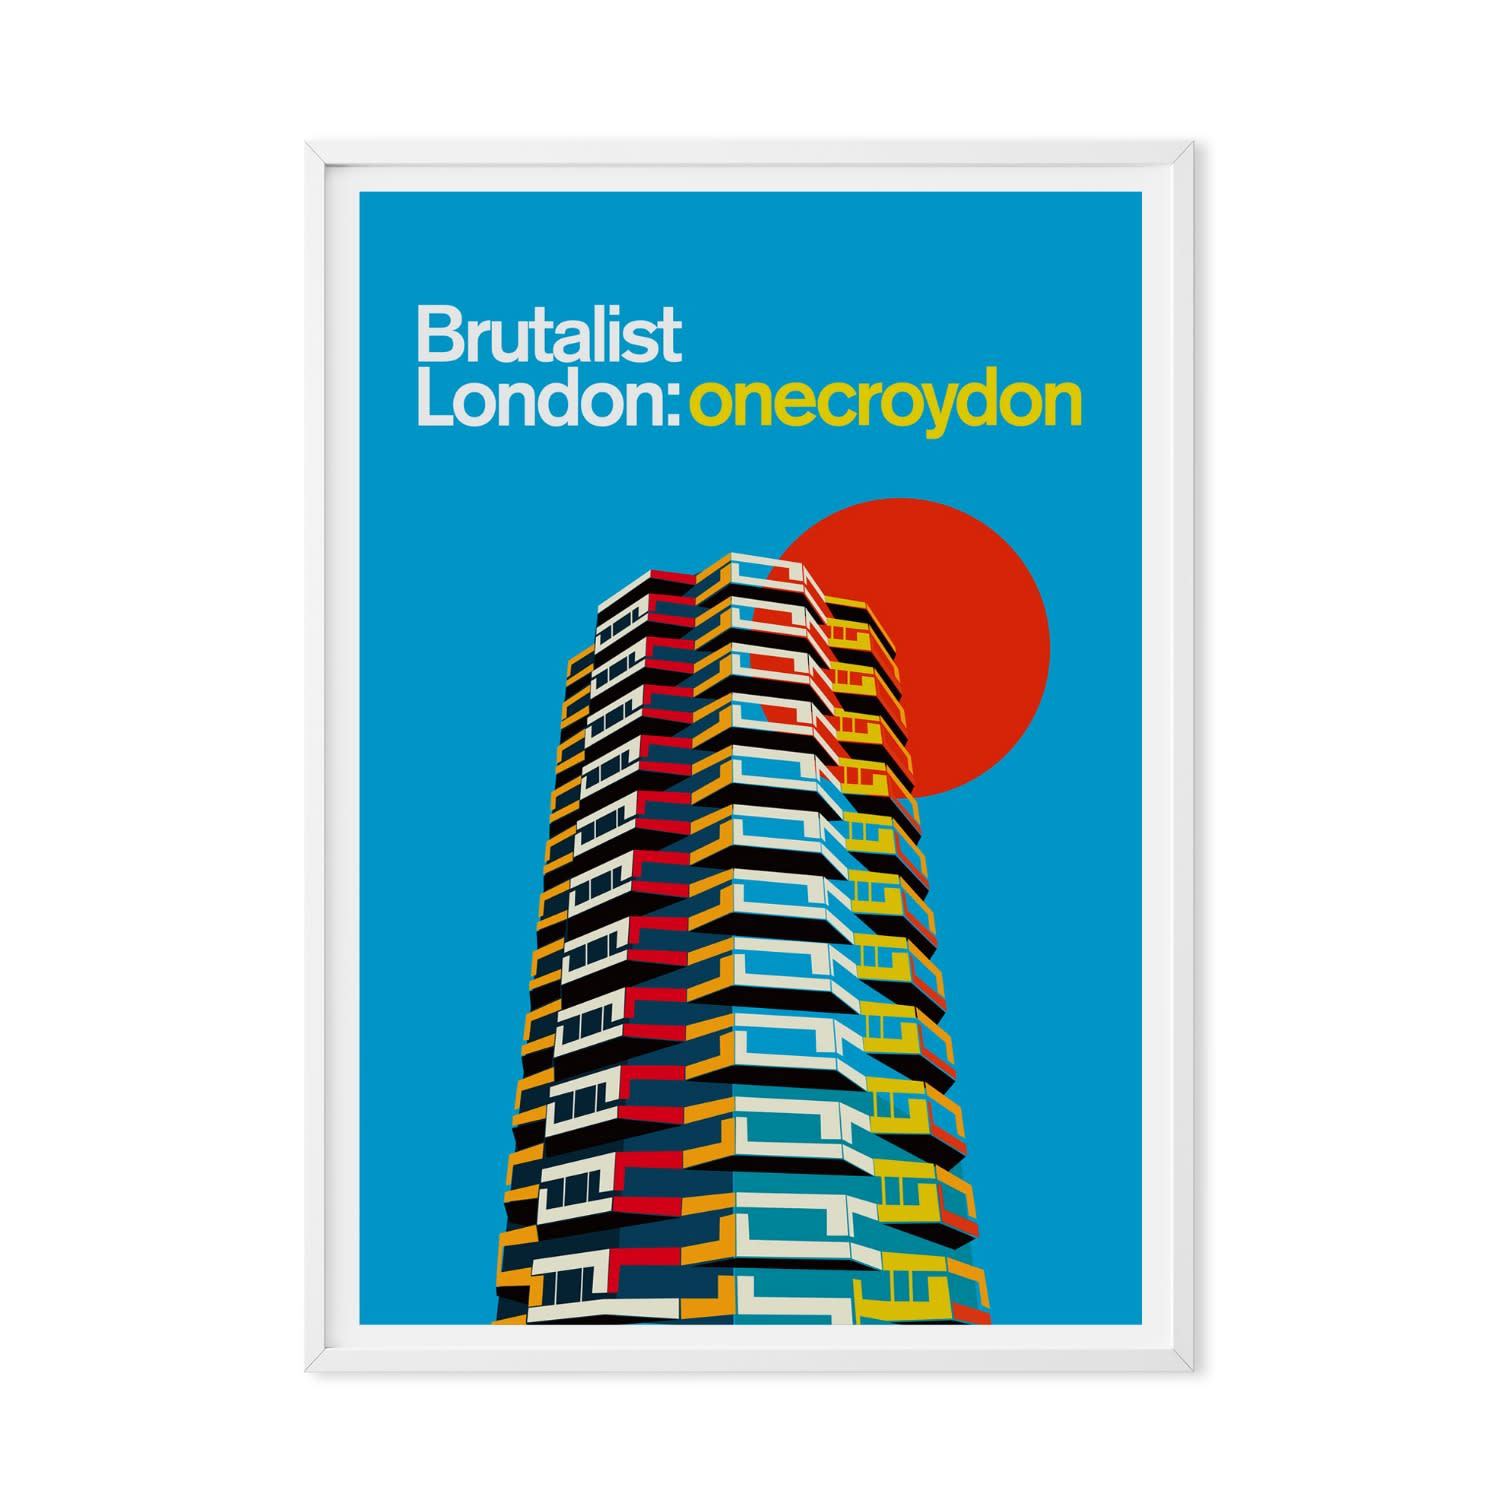 One croydon art print image